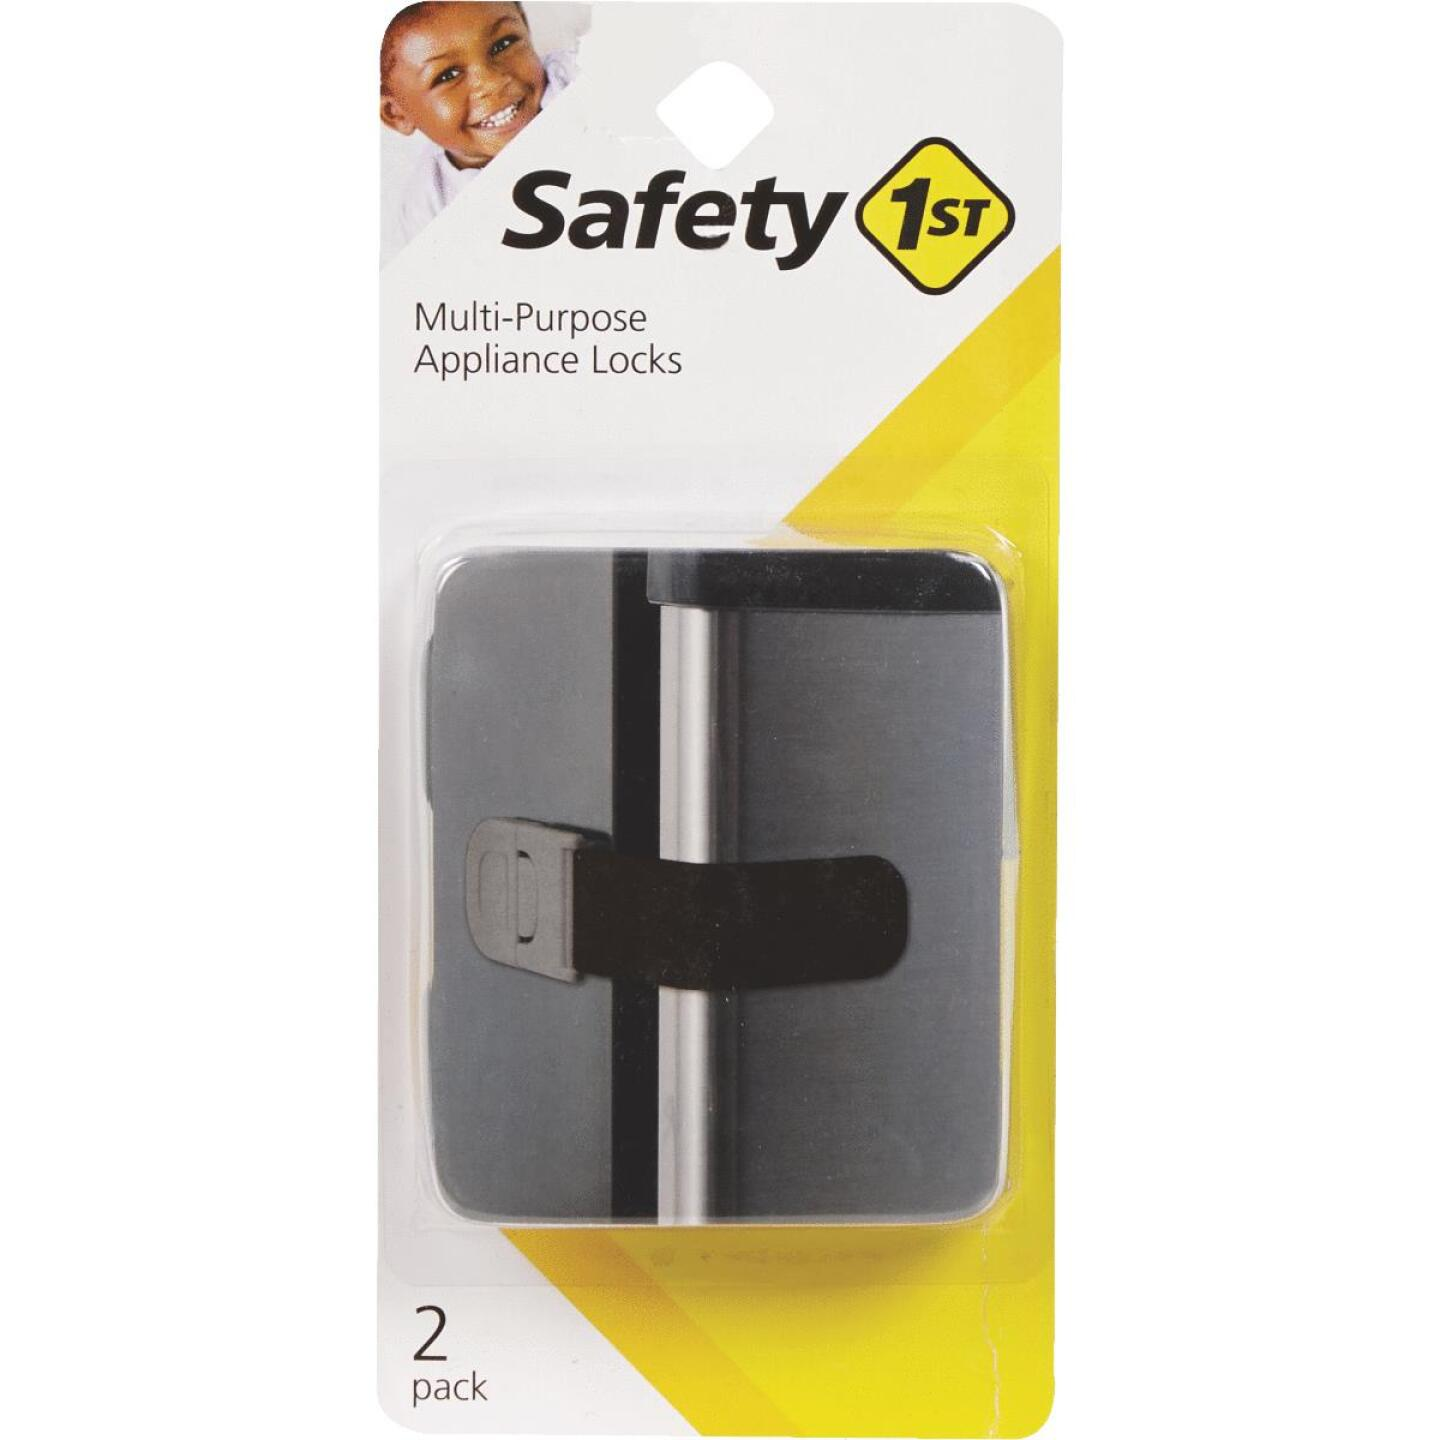 Safety 1st Multi-Purpose Appliance Lock (2-Pack) Image 1